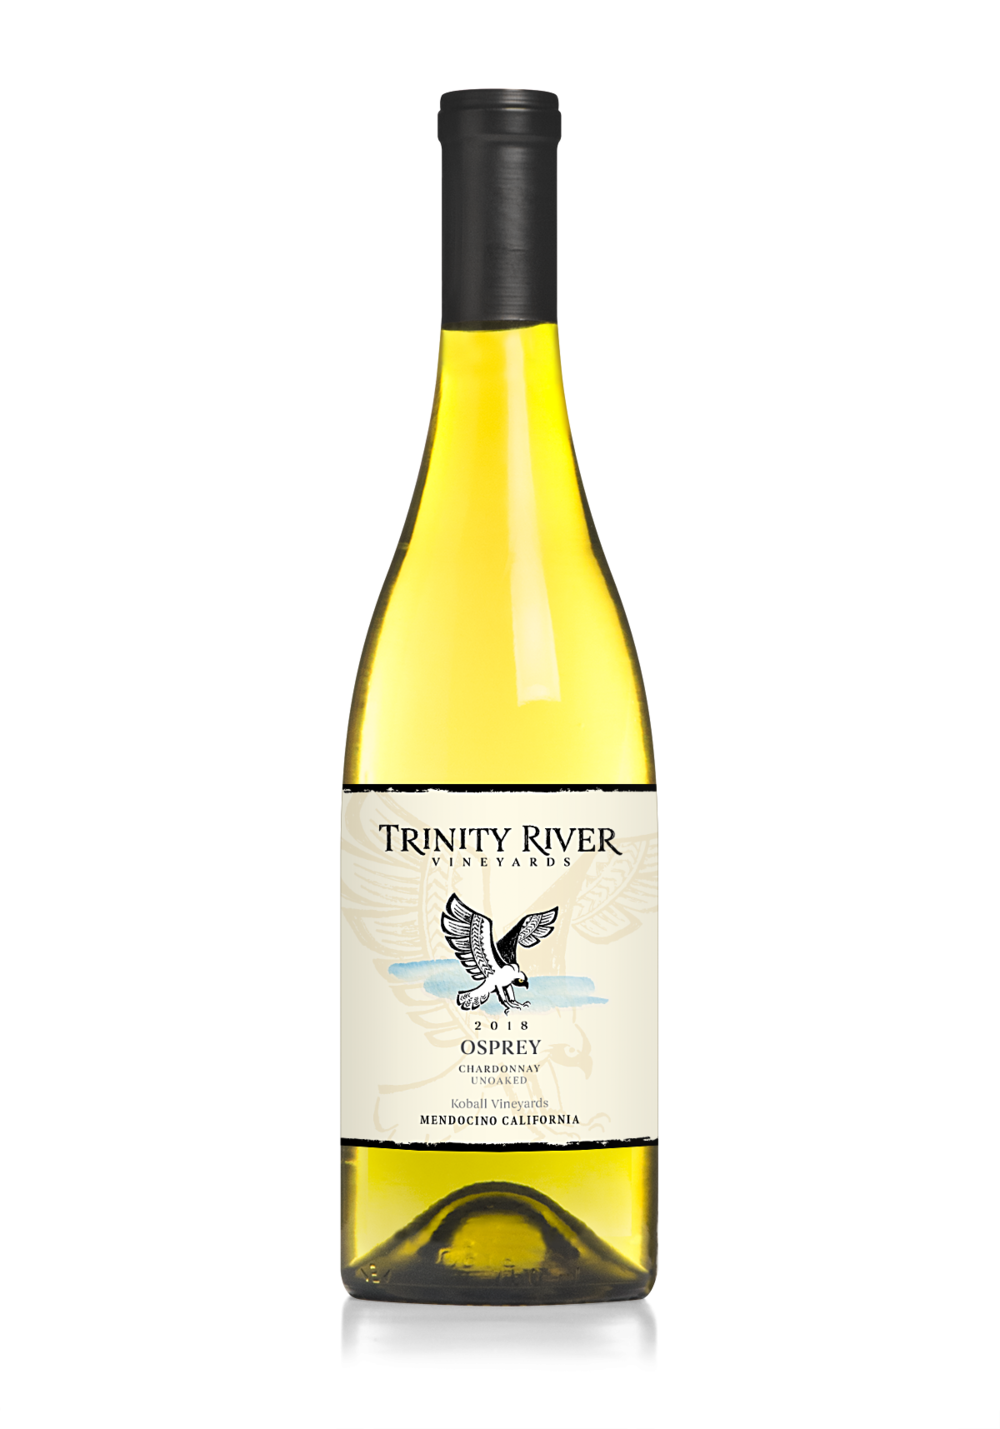 Chardonnay - 2018   2018 Osprey Chardonnay has a subtle floral and fruity nose is followed by green apple and melon fruit flavors. This is a crisp non-oaked chardonnay more reminiscent of Burgundy then Napa. 100% Stainless Steel throughout production keeps this wine bright and full of tension. It is ripe, but has great acidity for balance. This white wine is ready now, but has 2-5 years of staying power not typical in fat, over-ripe whites.